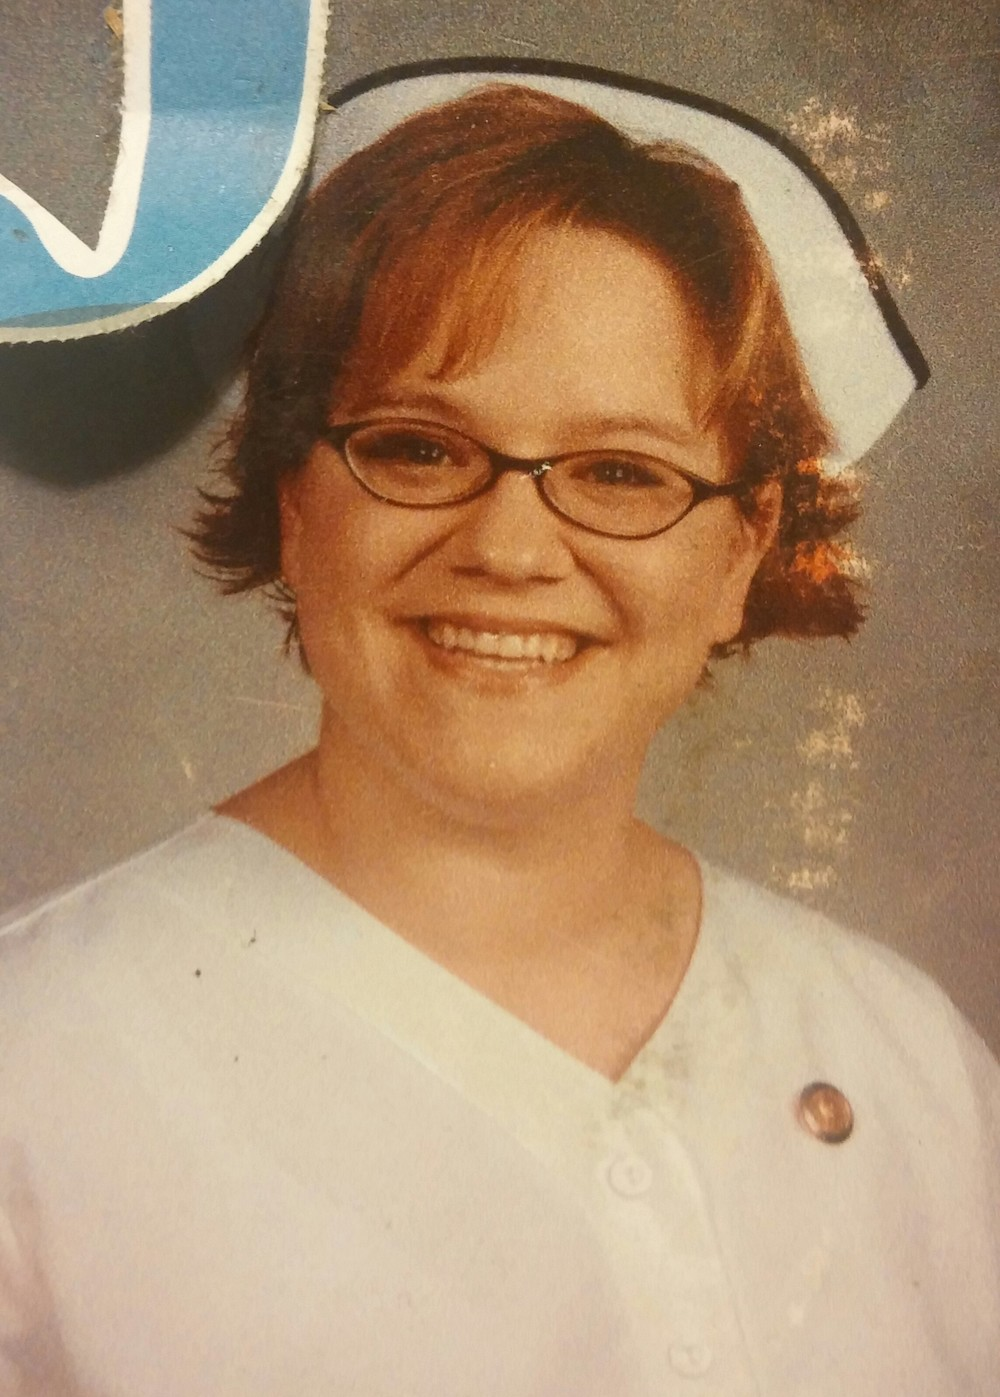 I was the only member of my class to wear one in 2005. My grandma and aunt were nurses and I wanted my graduation picture to reflect that history!  Jamie Gilliland, RN